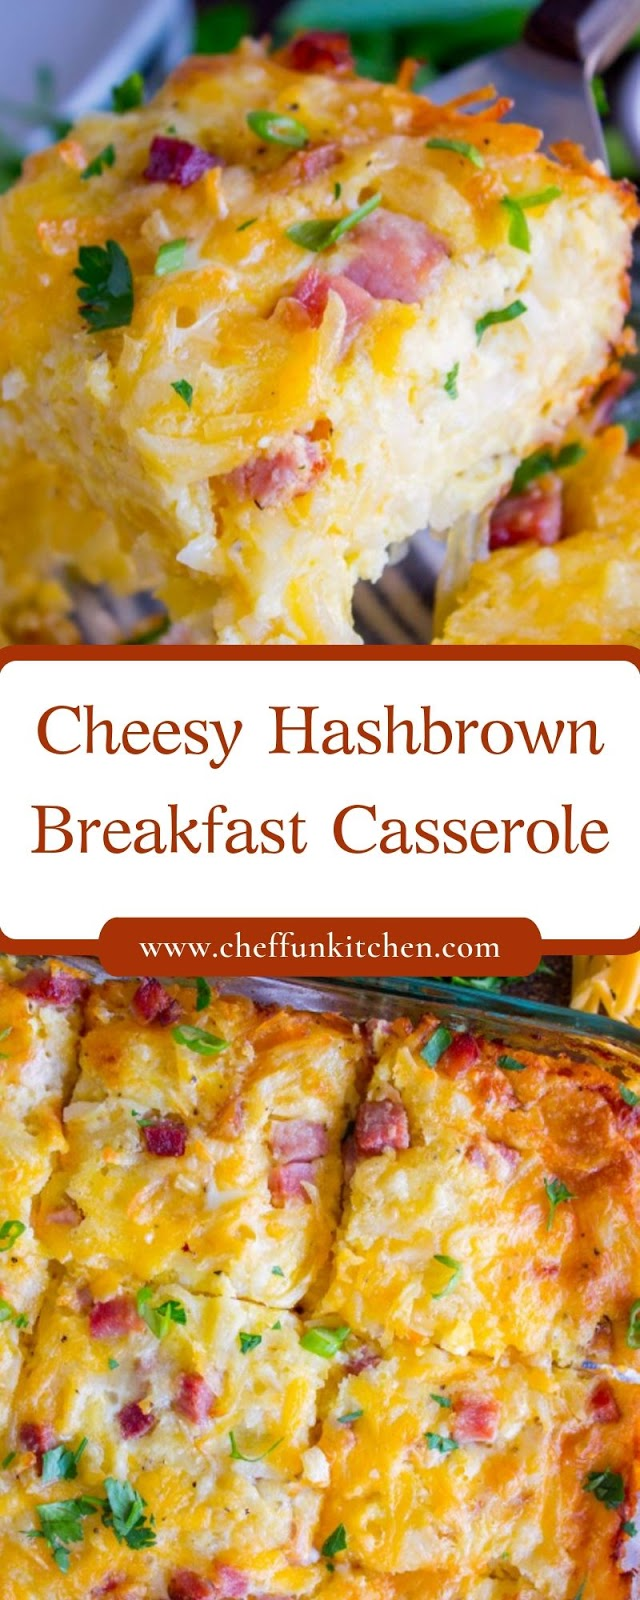 Cheesy Hashbrown Breakfast Casserole